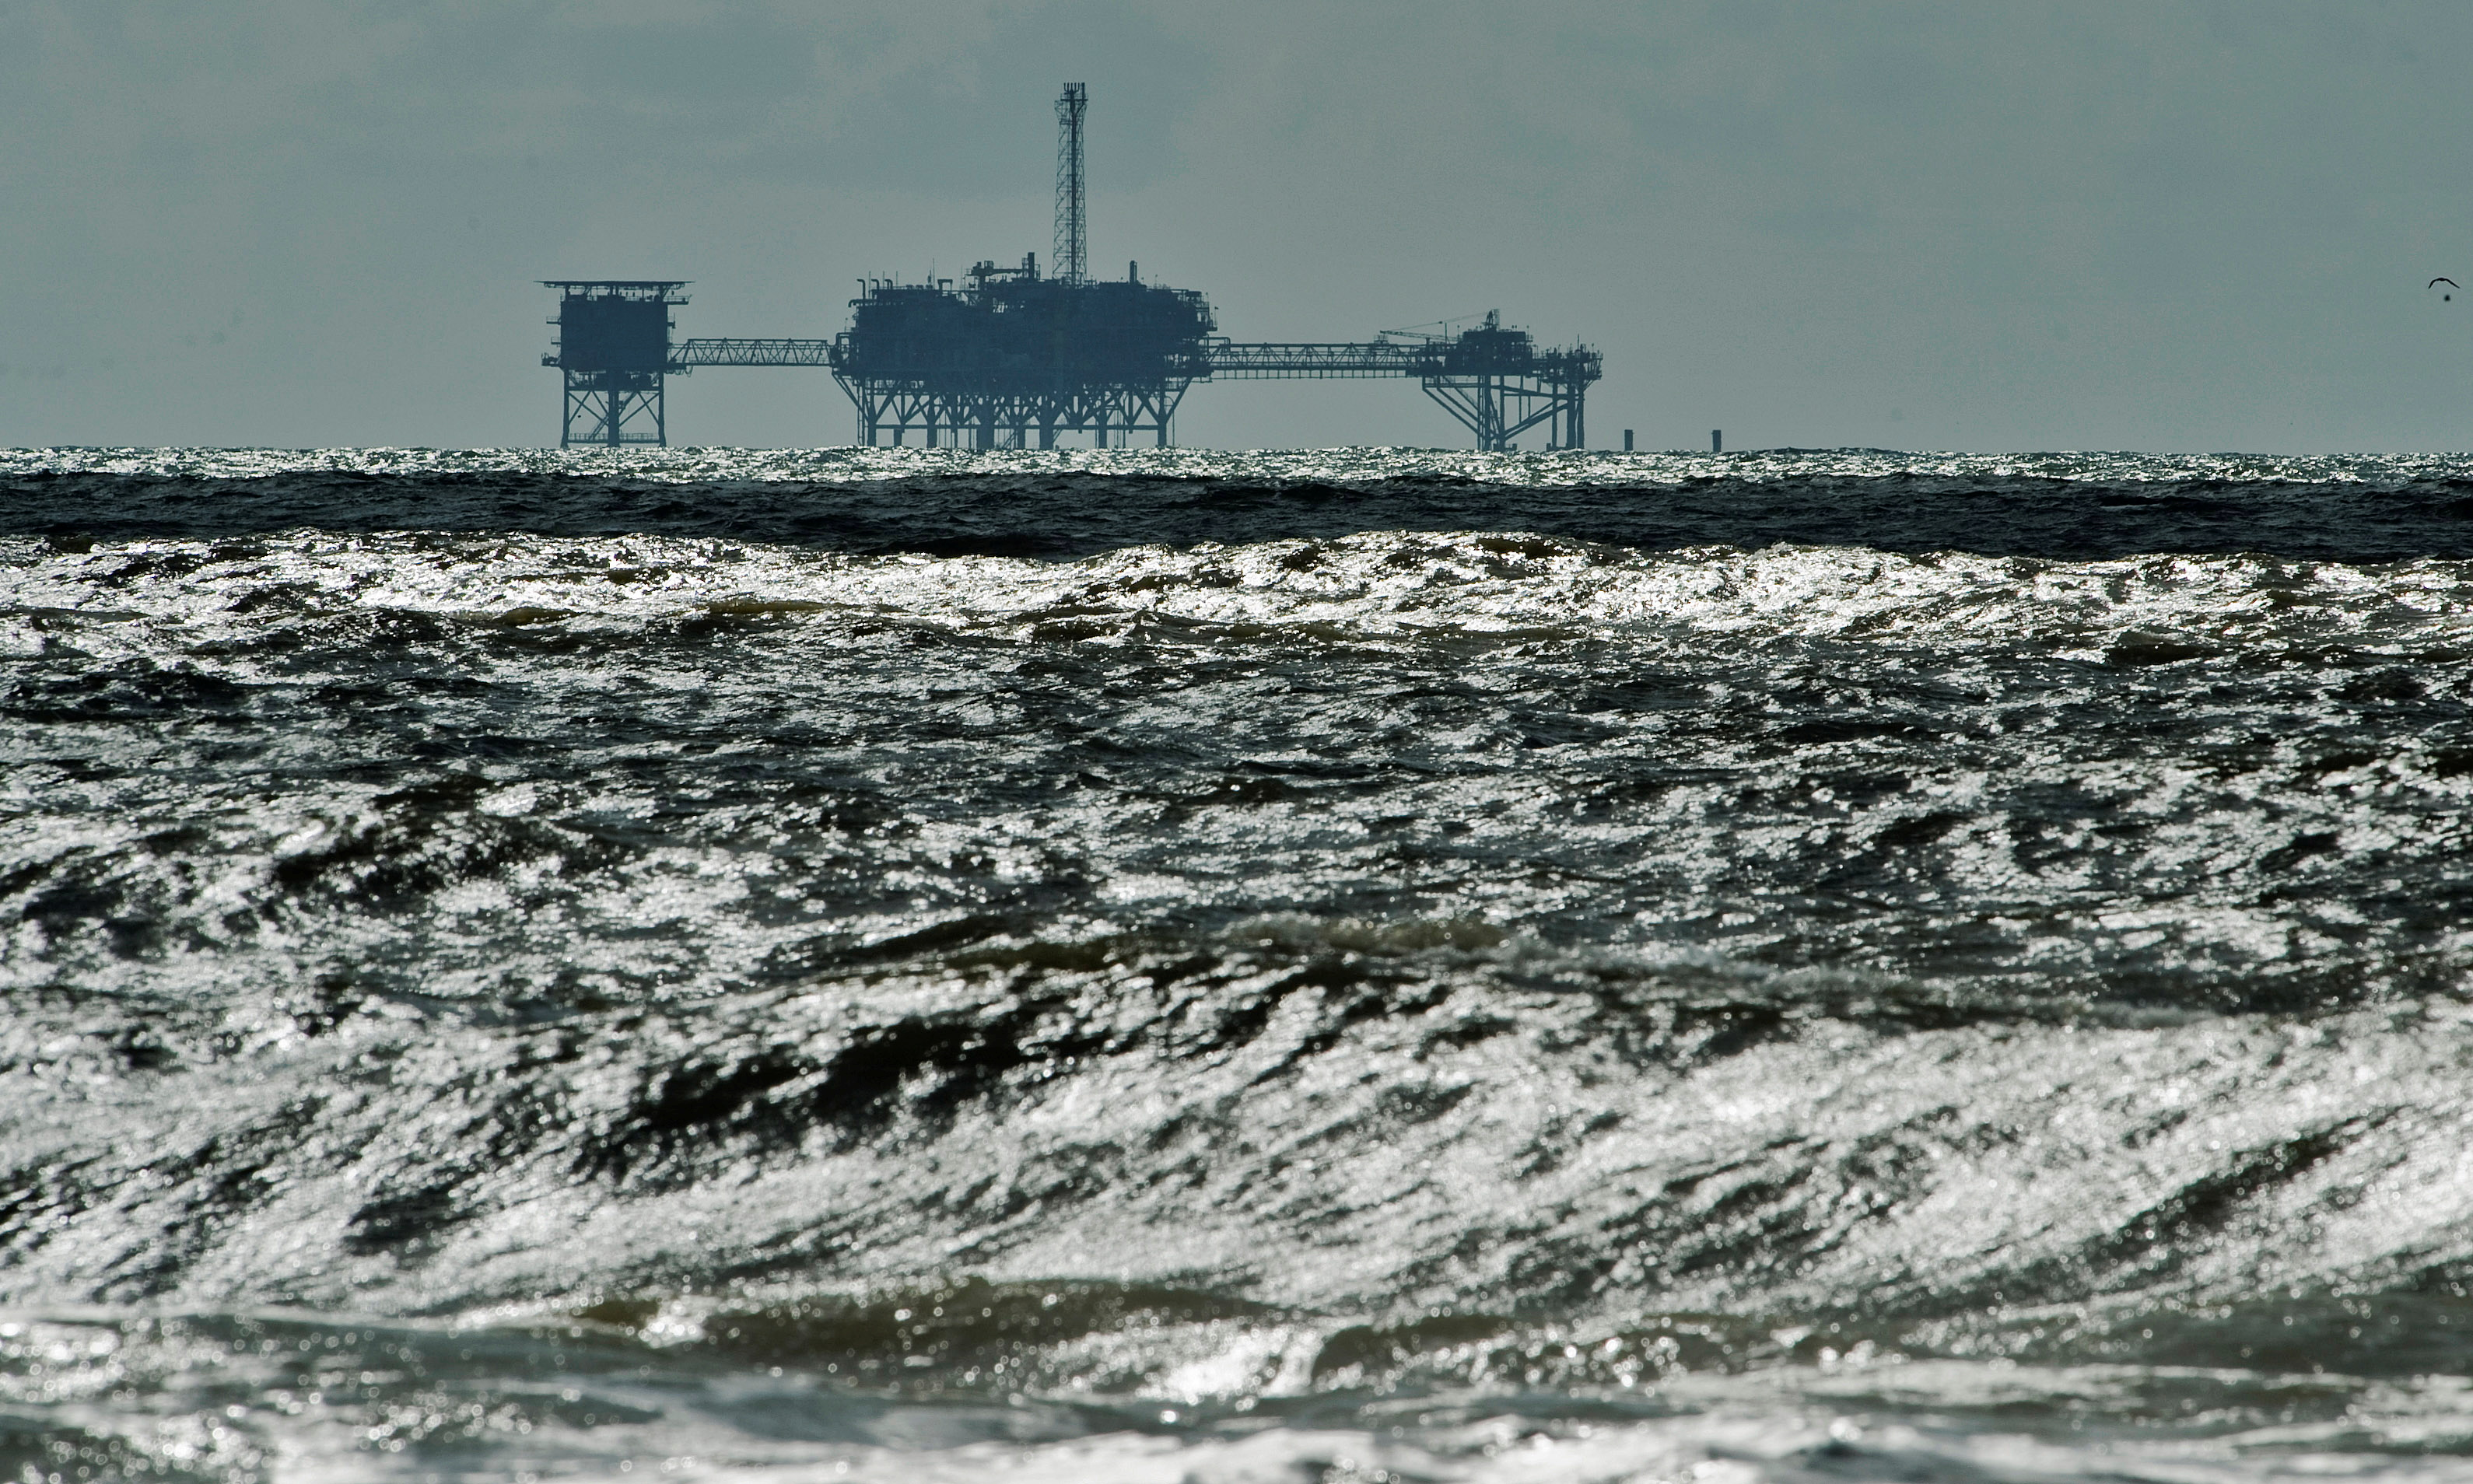 An oil and gas drilling platform stands offshore in Dauphin Island, Alabama, October 5, 2013.  REUTERS/Steve Nesius